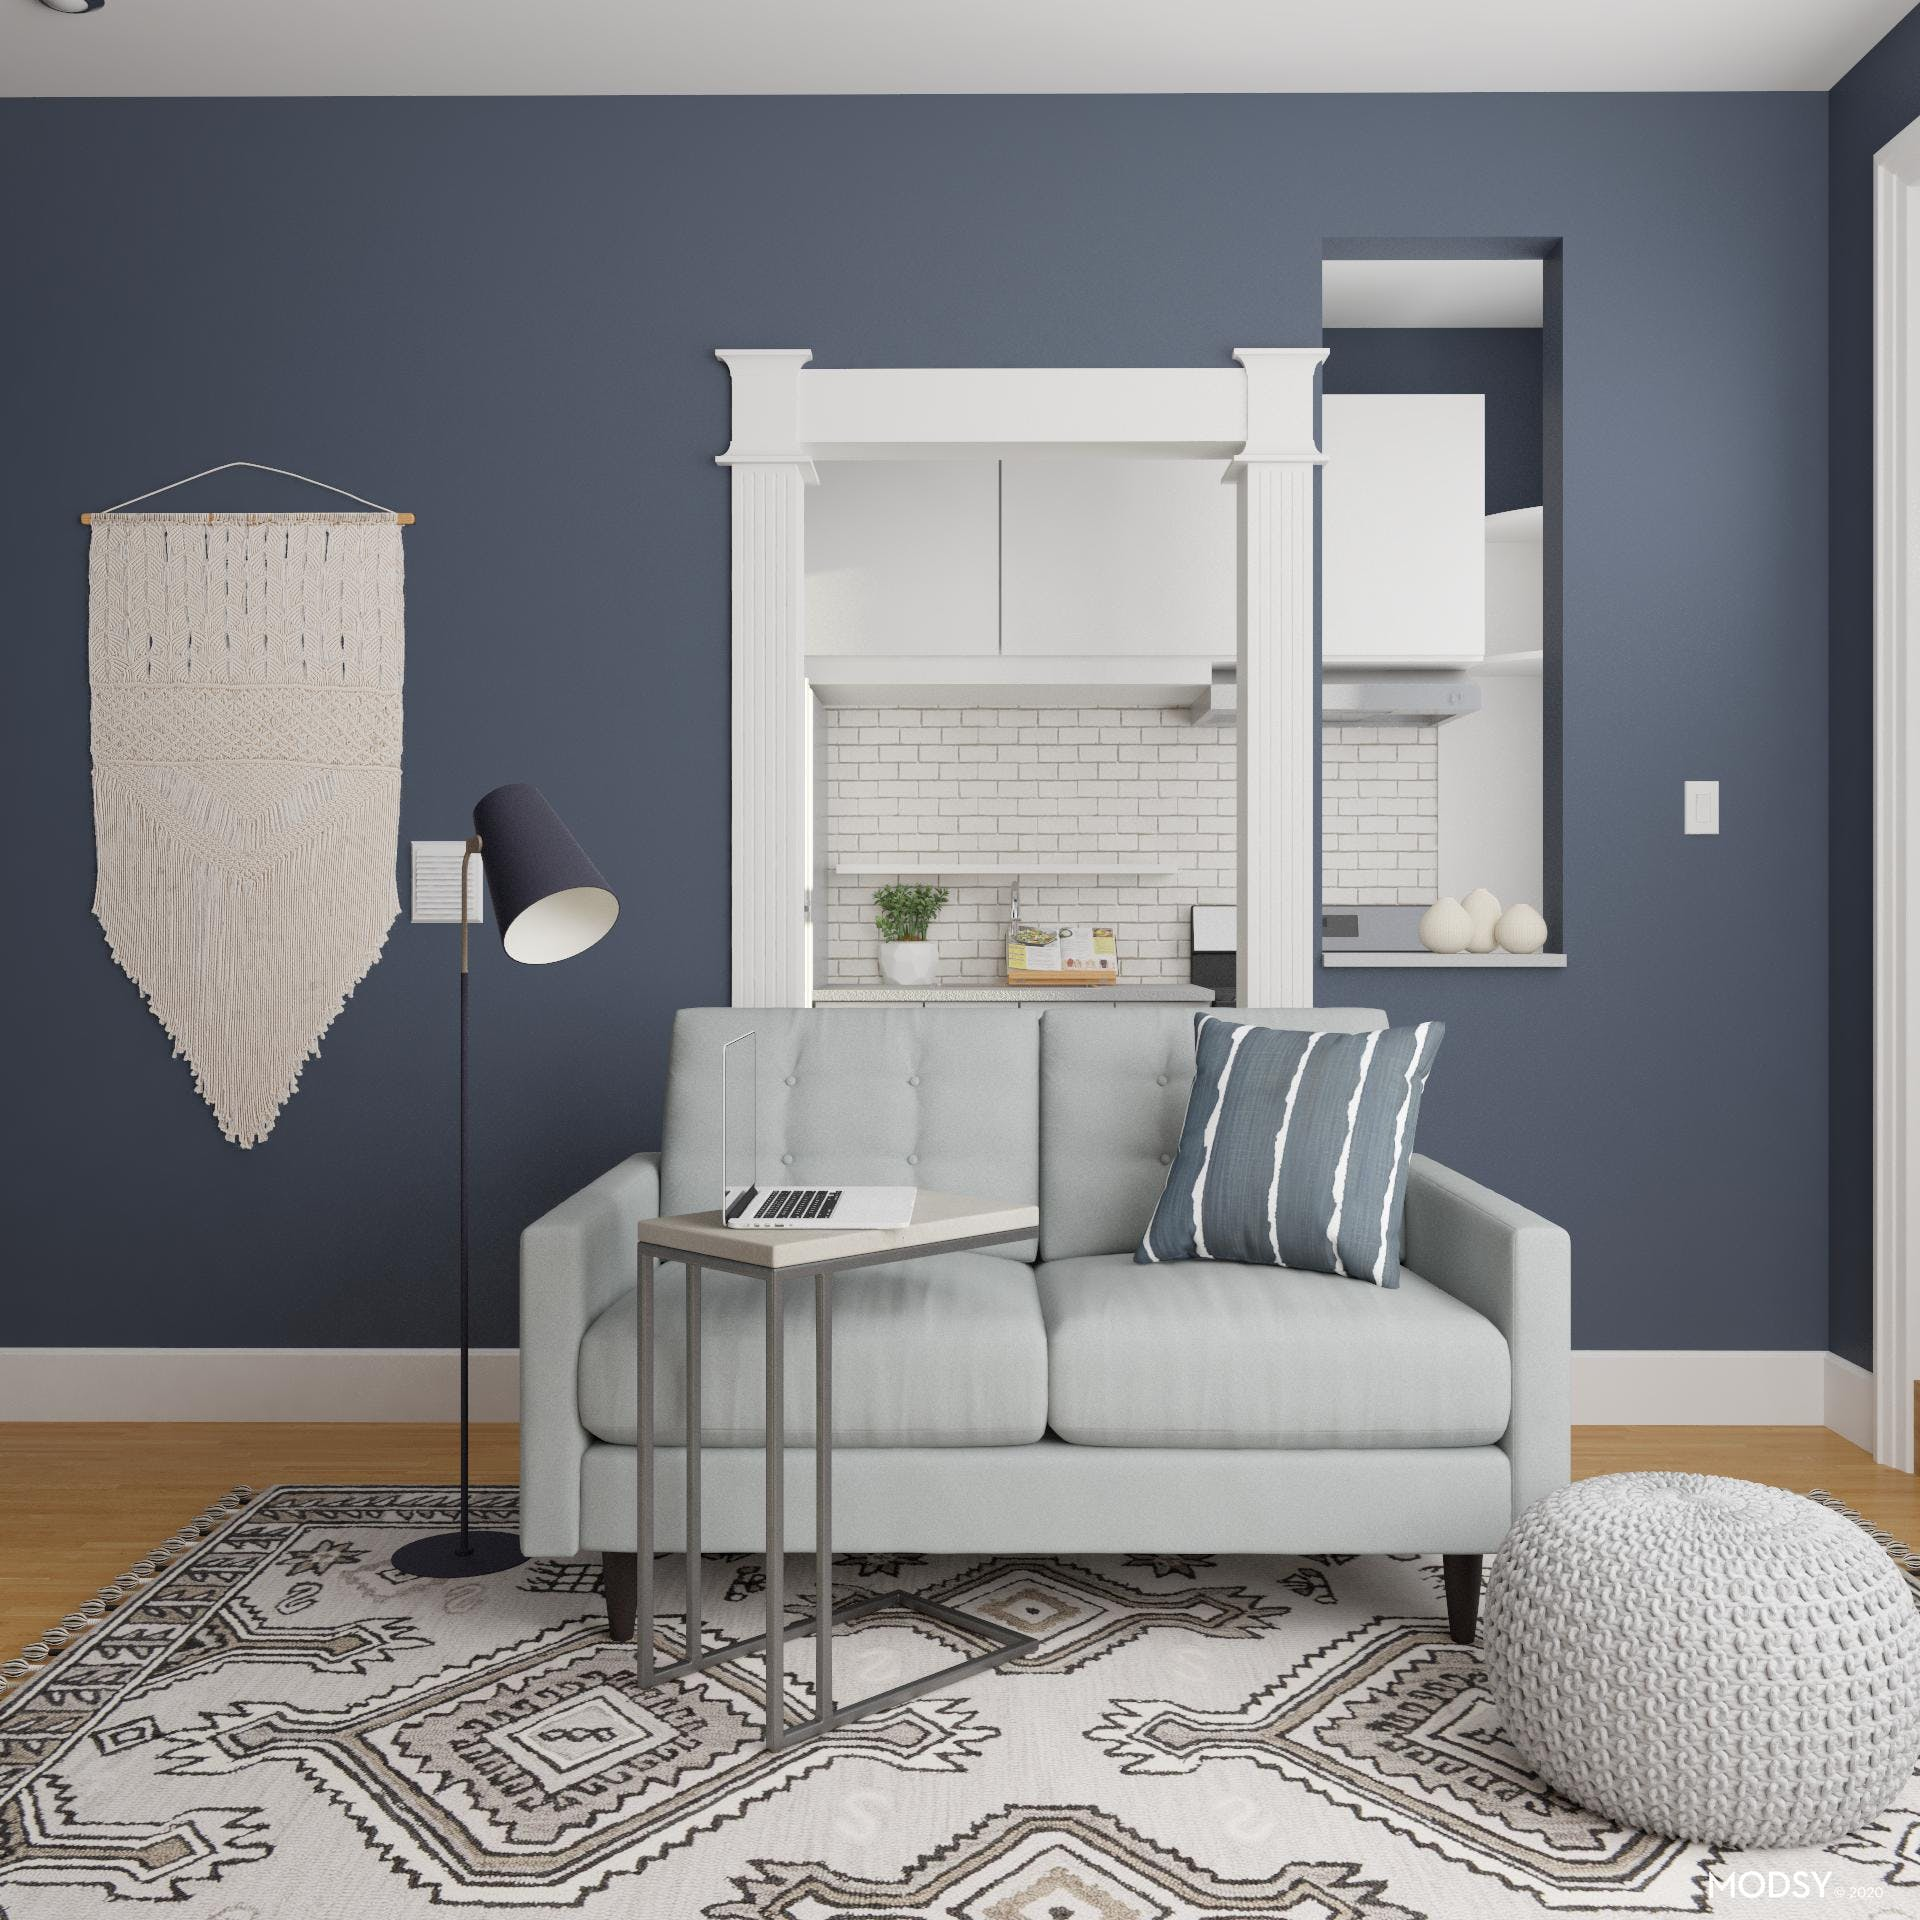 Eclectic and Contemporary Seating Space in Blue and Gray